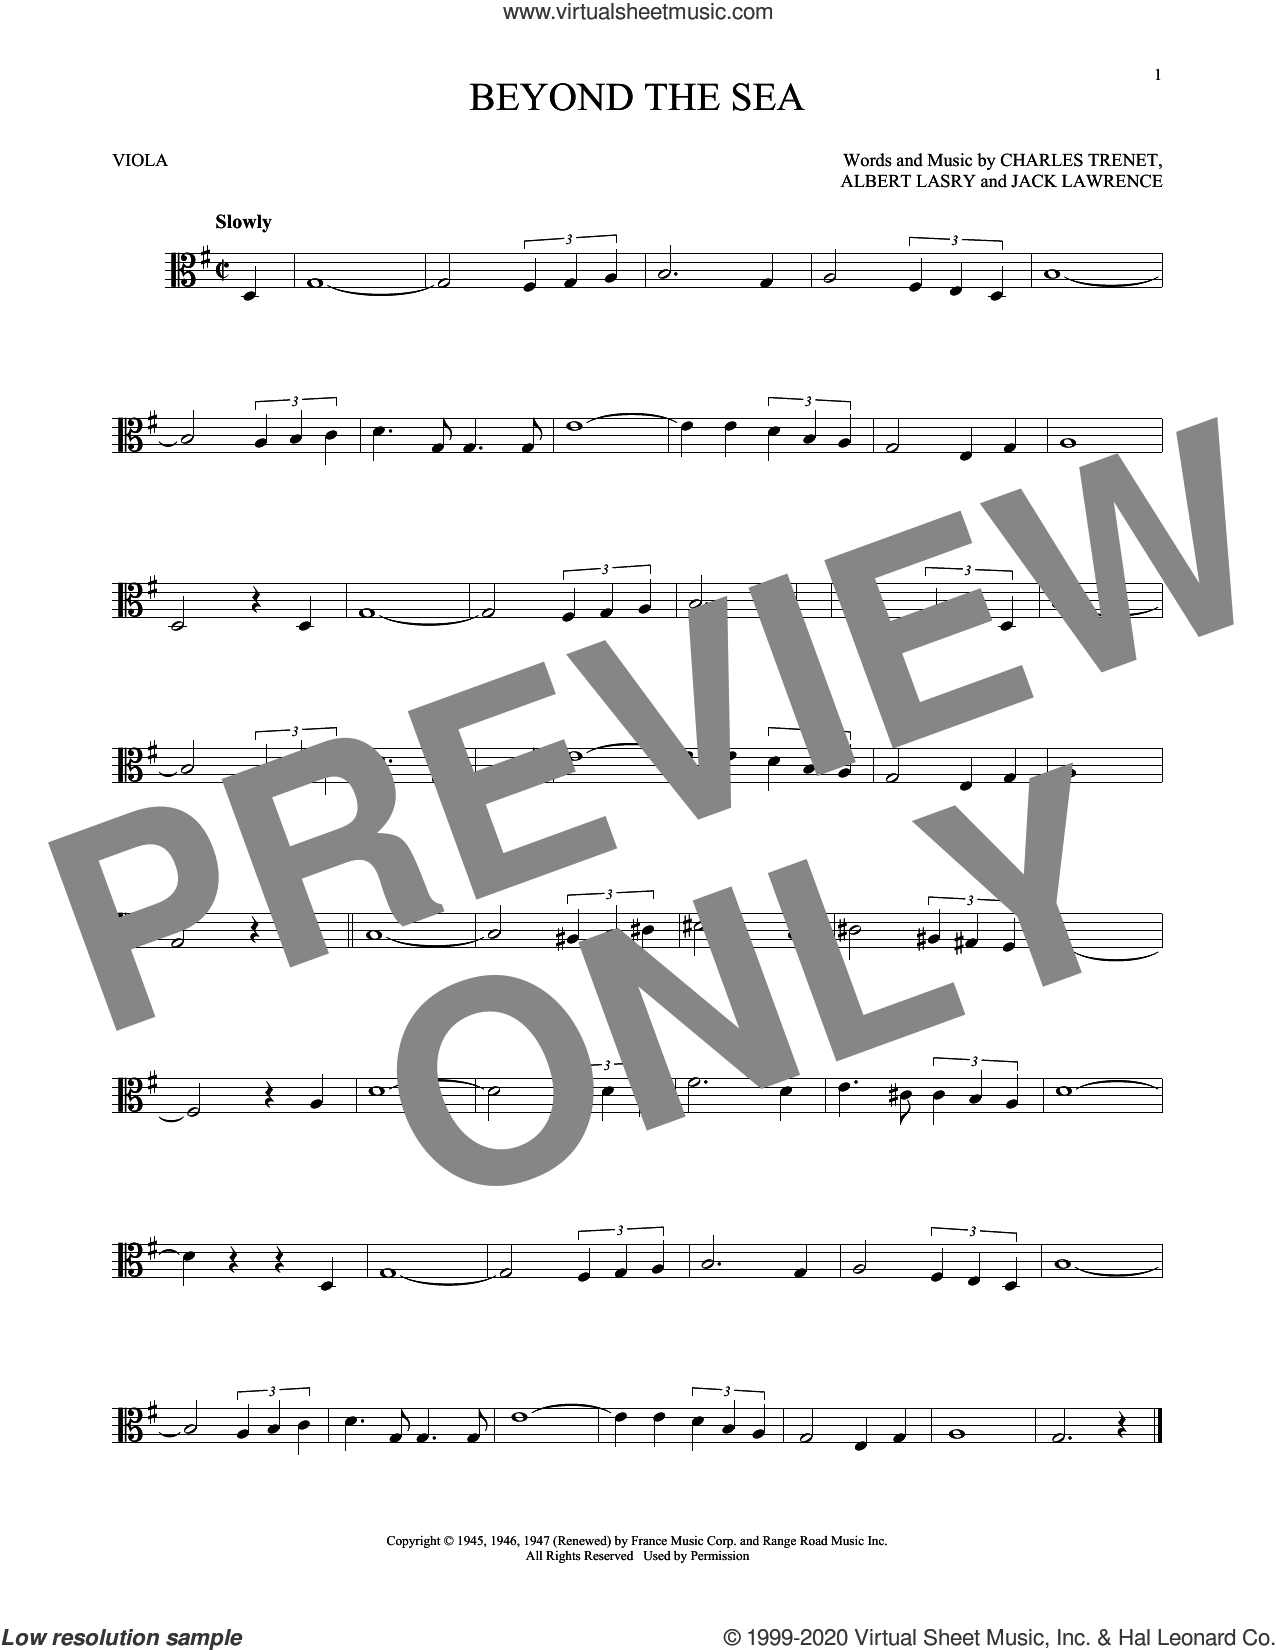 Beyond The Sea sheet music for viola solo by Bobby Darin, Roger Williams, Albert Lasry, Charles Trenet and Jack Lawrence, intermediate skill level